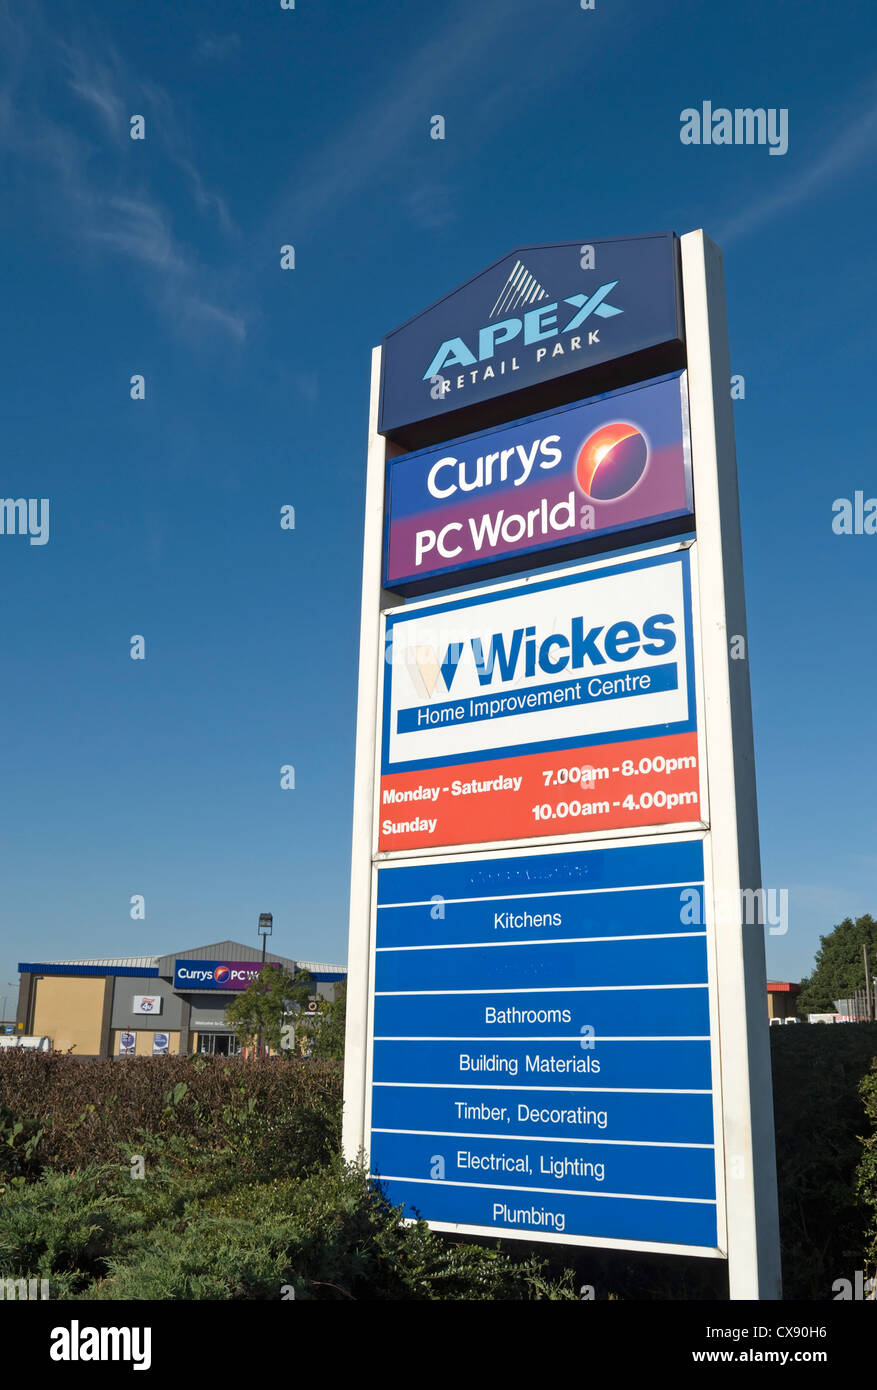 Wickes Lighting Kitchen Pillar Sign At Apex Retail Park Advertising Wickes And Currys